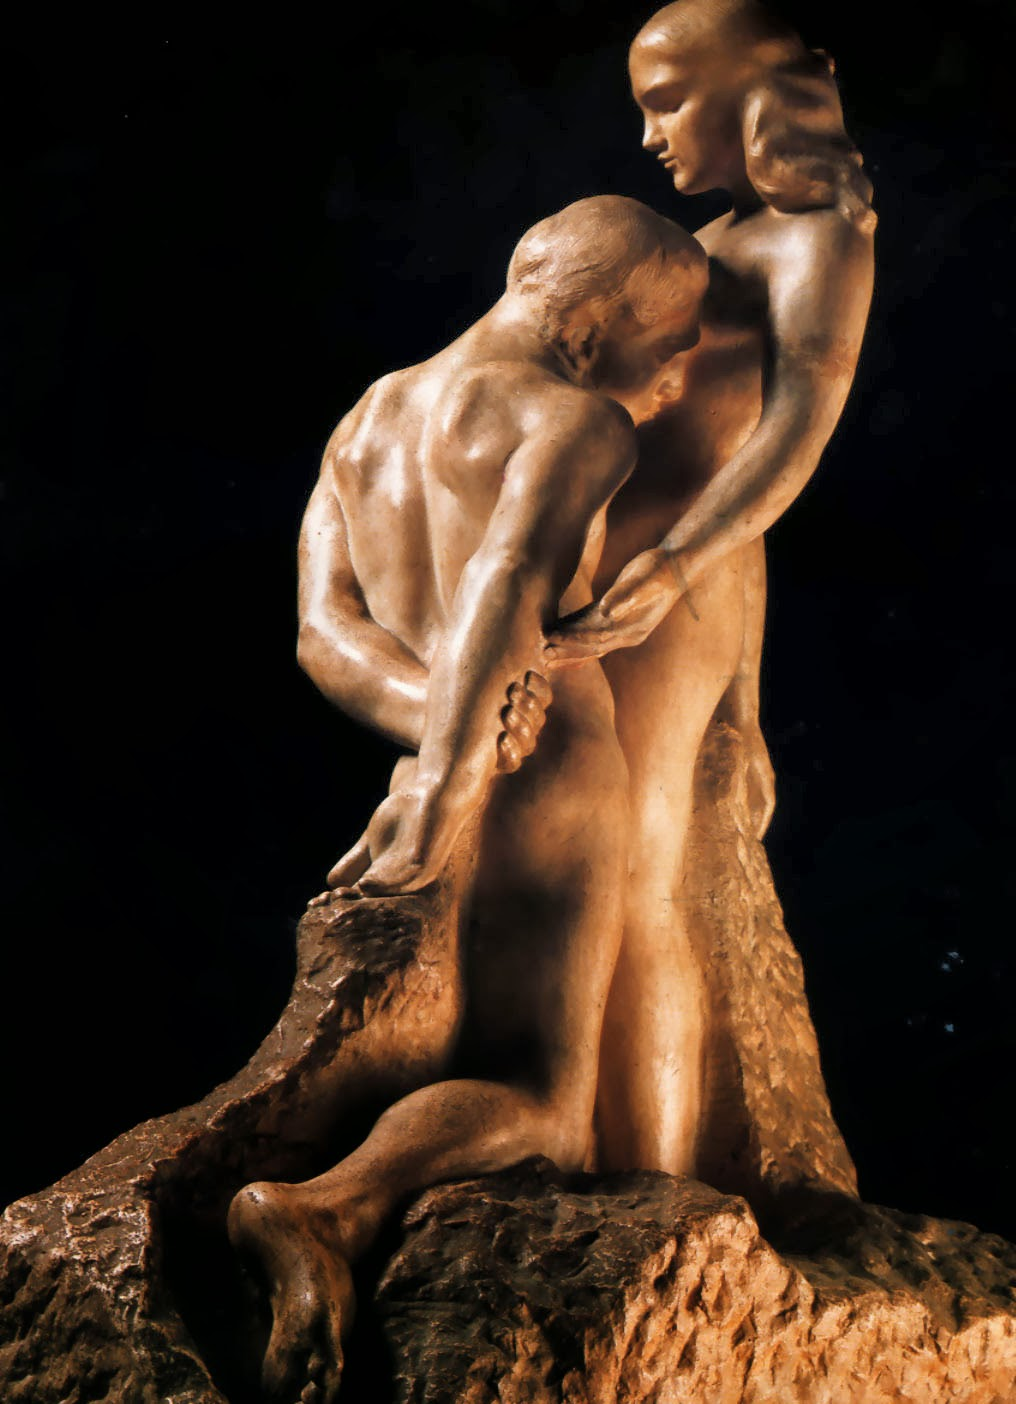 Auguste Rodin - Eternal idol, 1889